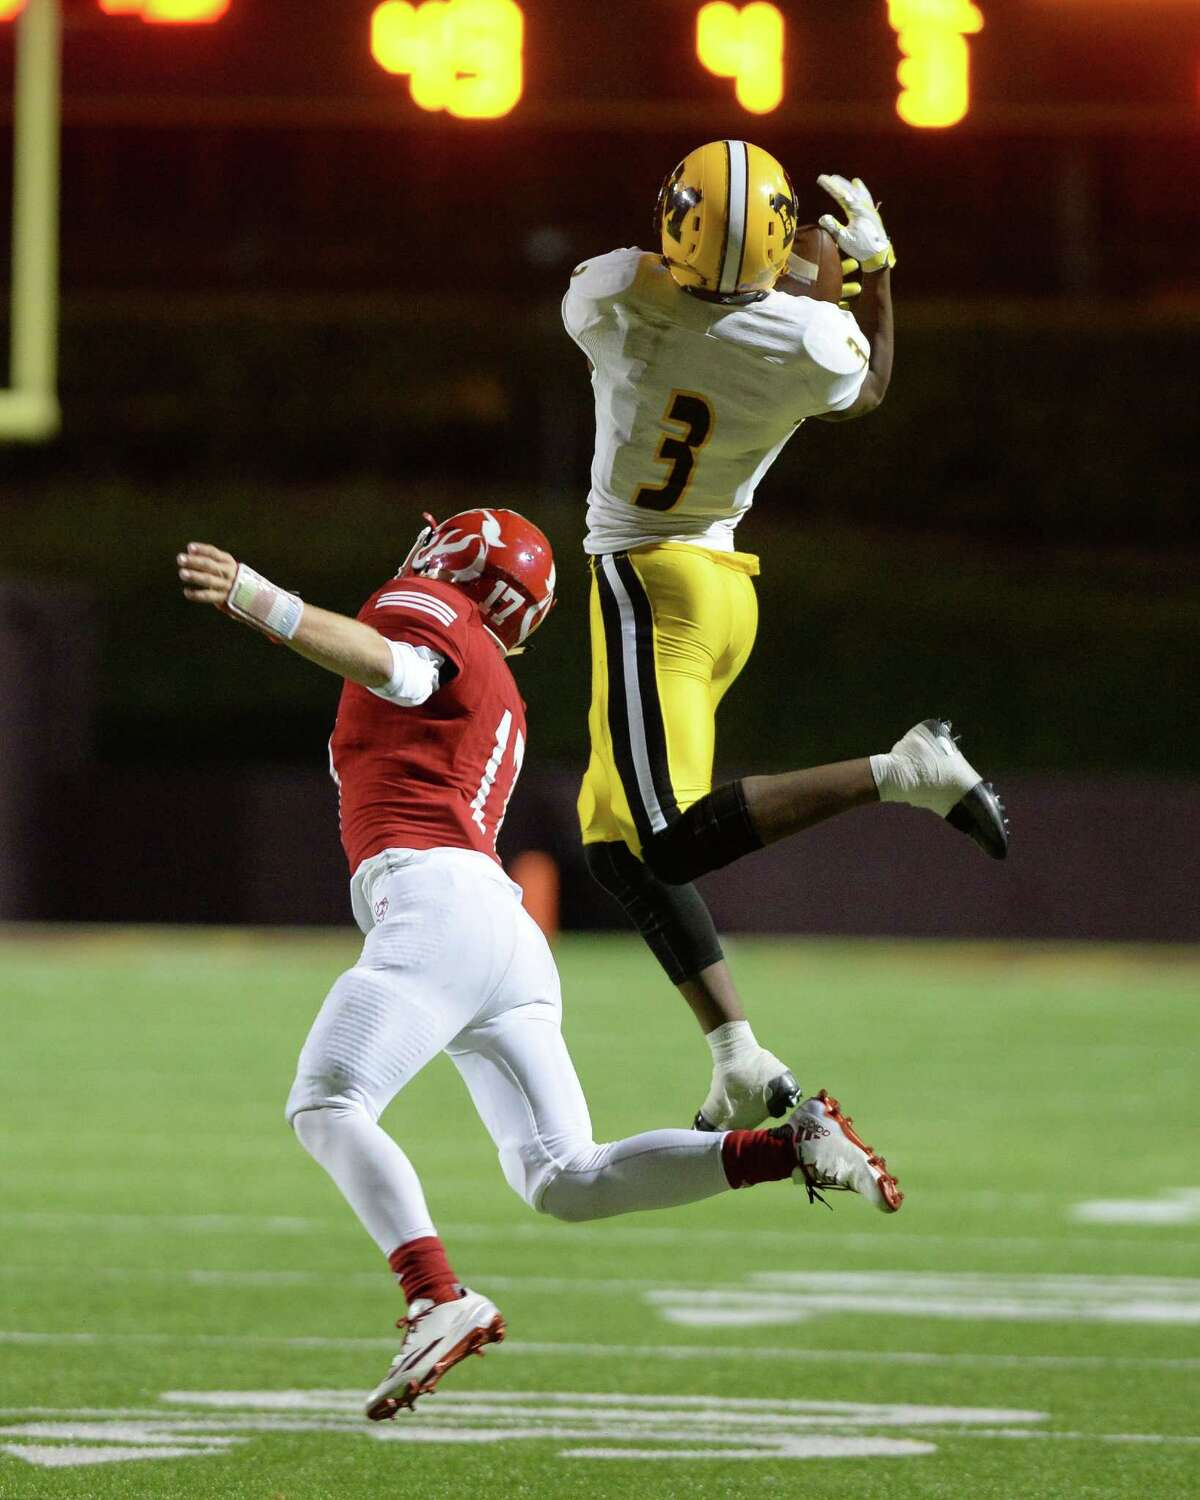 Henry Thomas (3) of Marshall leaps for a touchdown reception in the fourth quarter of a 5A Region III Division 2 playoff game between the Ft. Bend Marshall Buffalos and the Crosby Cougars on Friday November 18, 2016 at Abshire Stadium, Deer Park, TX.